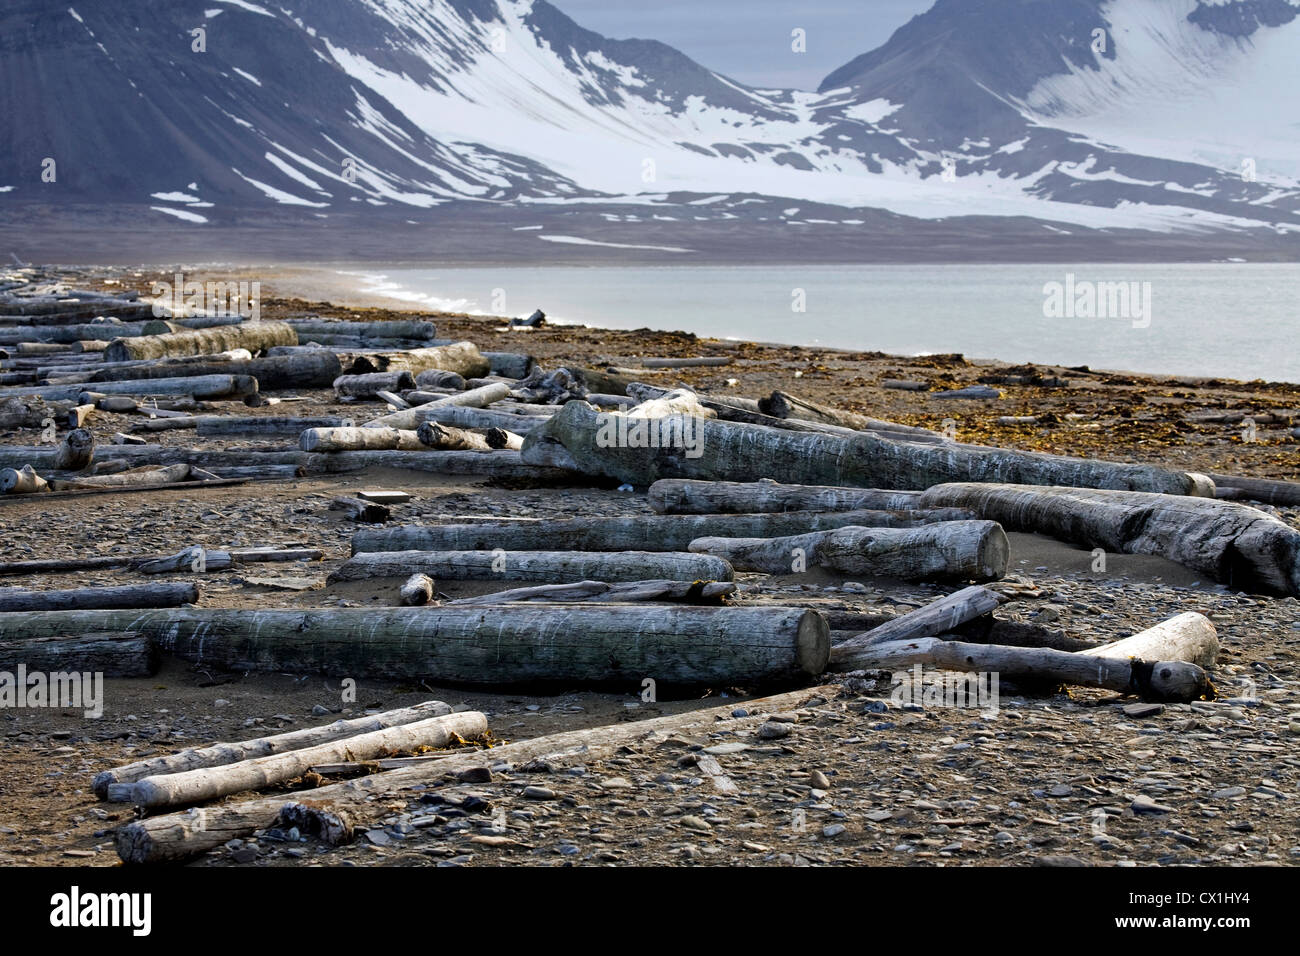 Logs from Siberia washed ashore as driftwood on Arctic beach at Svalbard, Spitsbergen, Norway - Stock Image